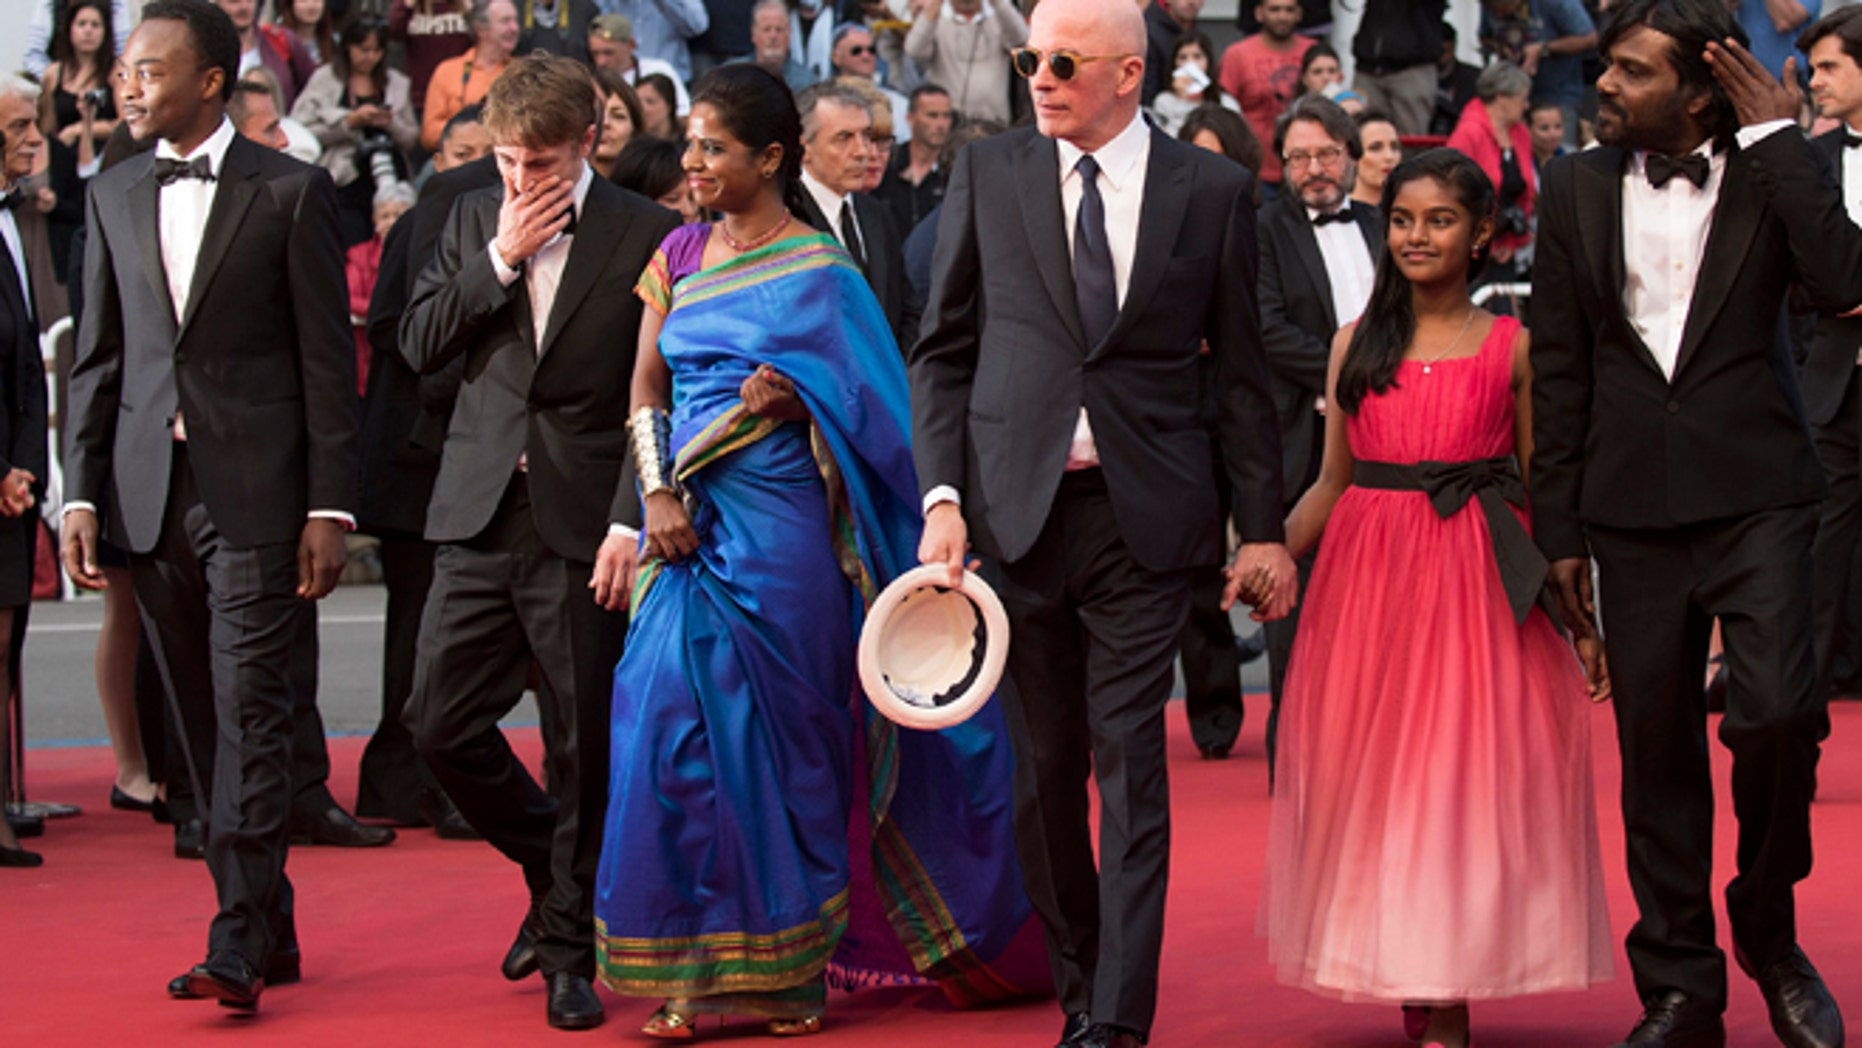 May 21, 2015: From left, Marc Zinga, Vincent Rottiers, Kalieaswari Srinivasan, director Jacques Audiard, Claudine Vinasithamby and Jesuthasan Antonythasan arrive for the screening of the film Dheepan at the 68th international film festival, Cannes, southern France.